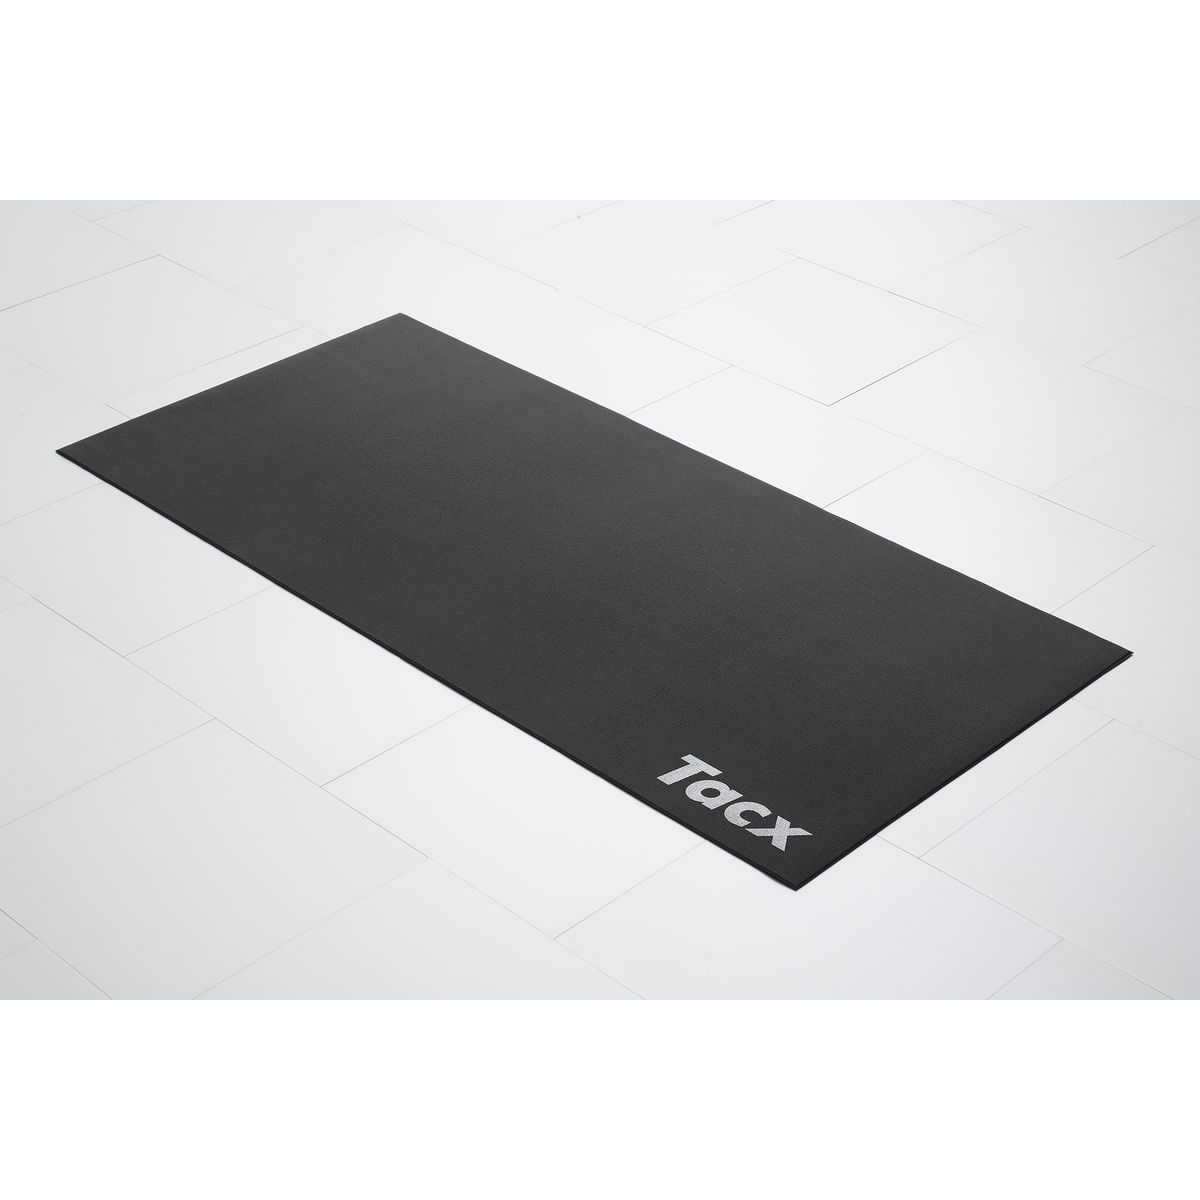 Tacx T2915 trainer mat | covers_hometrainer_component